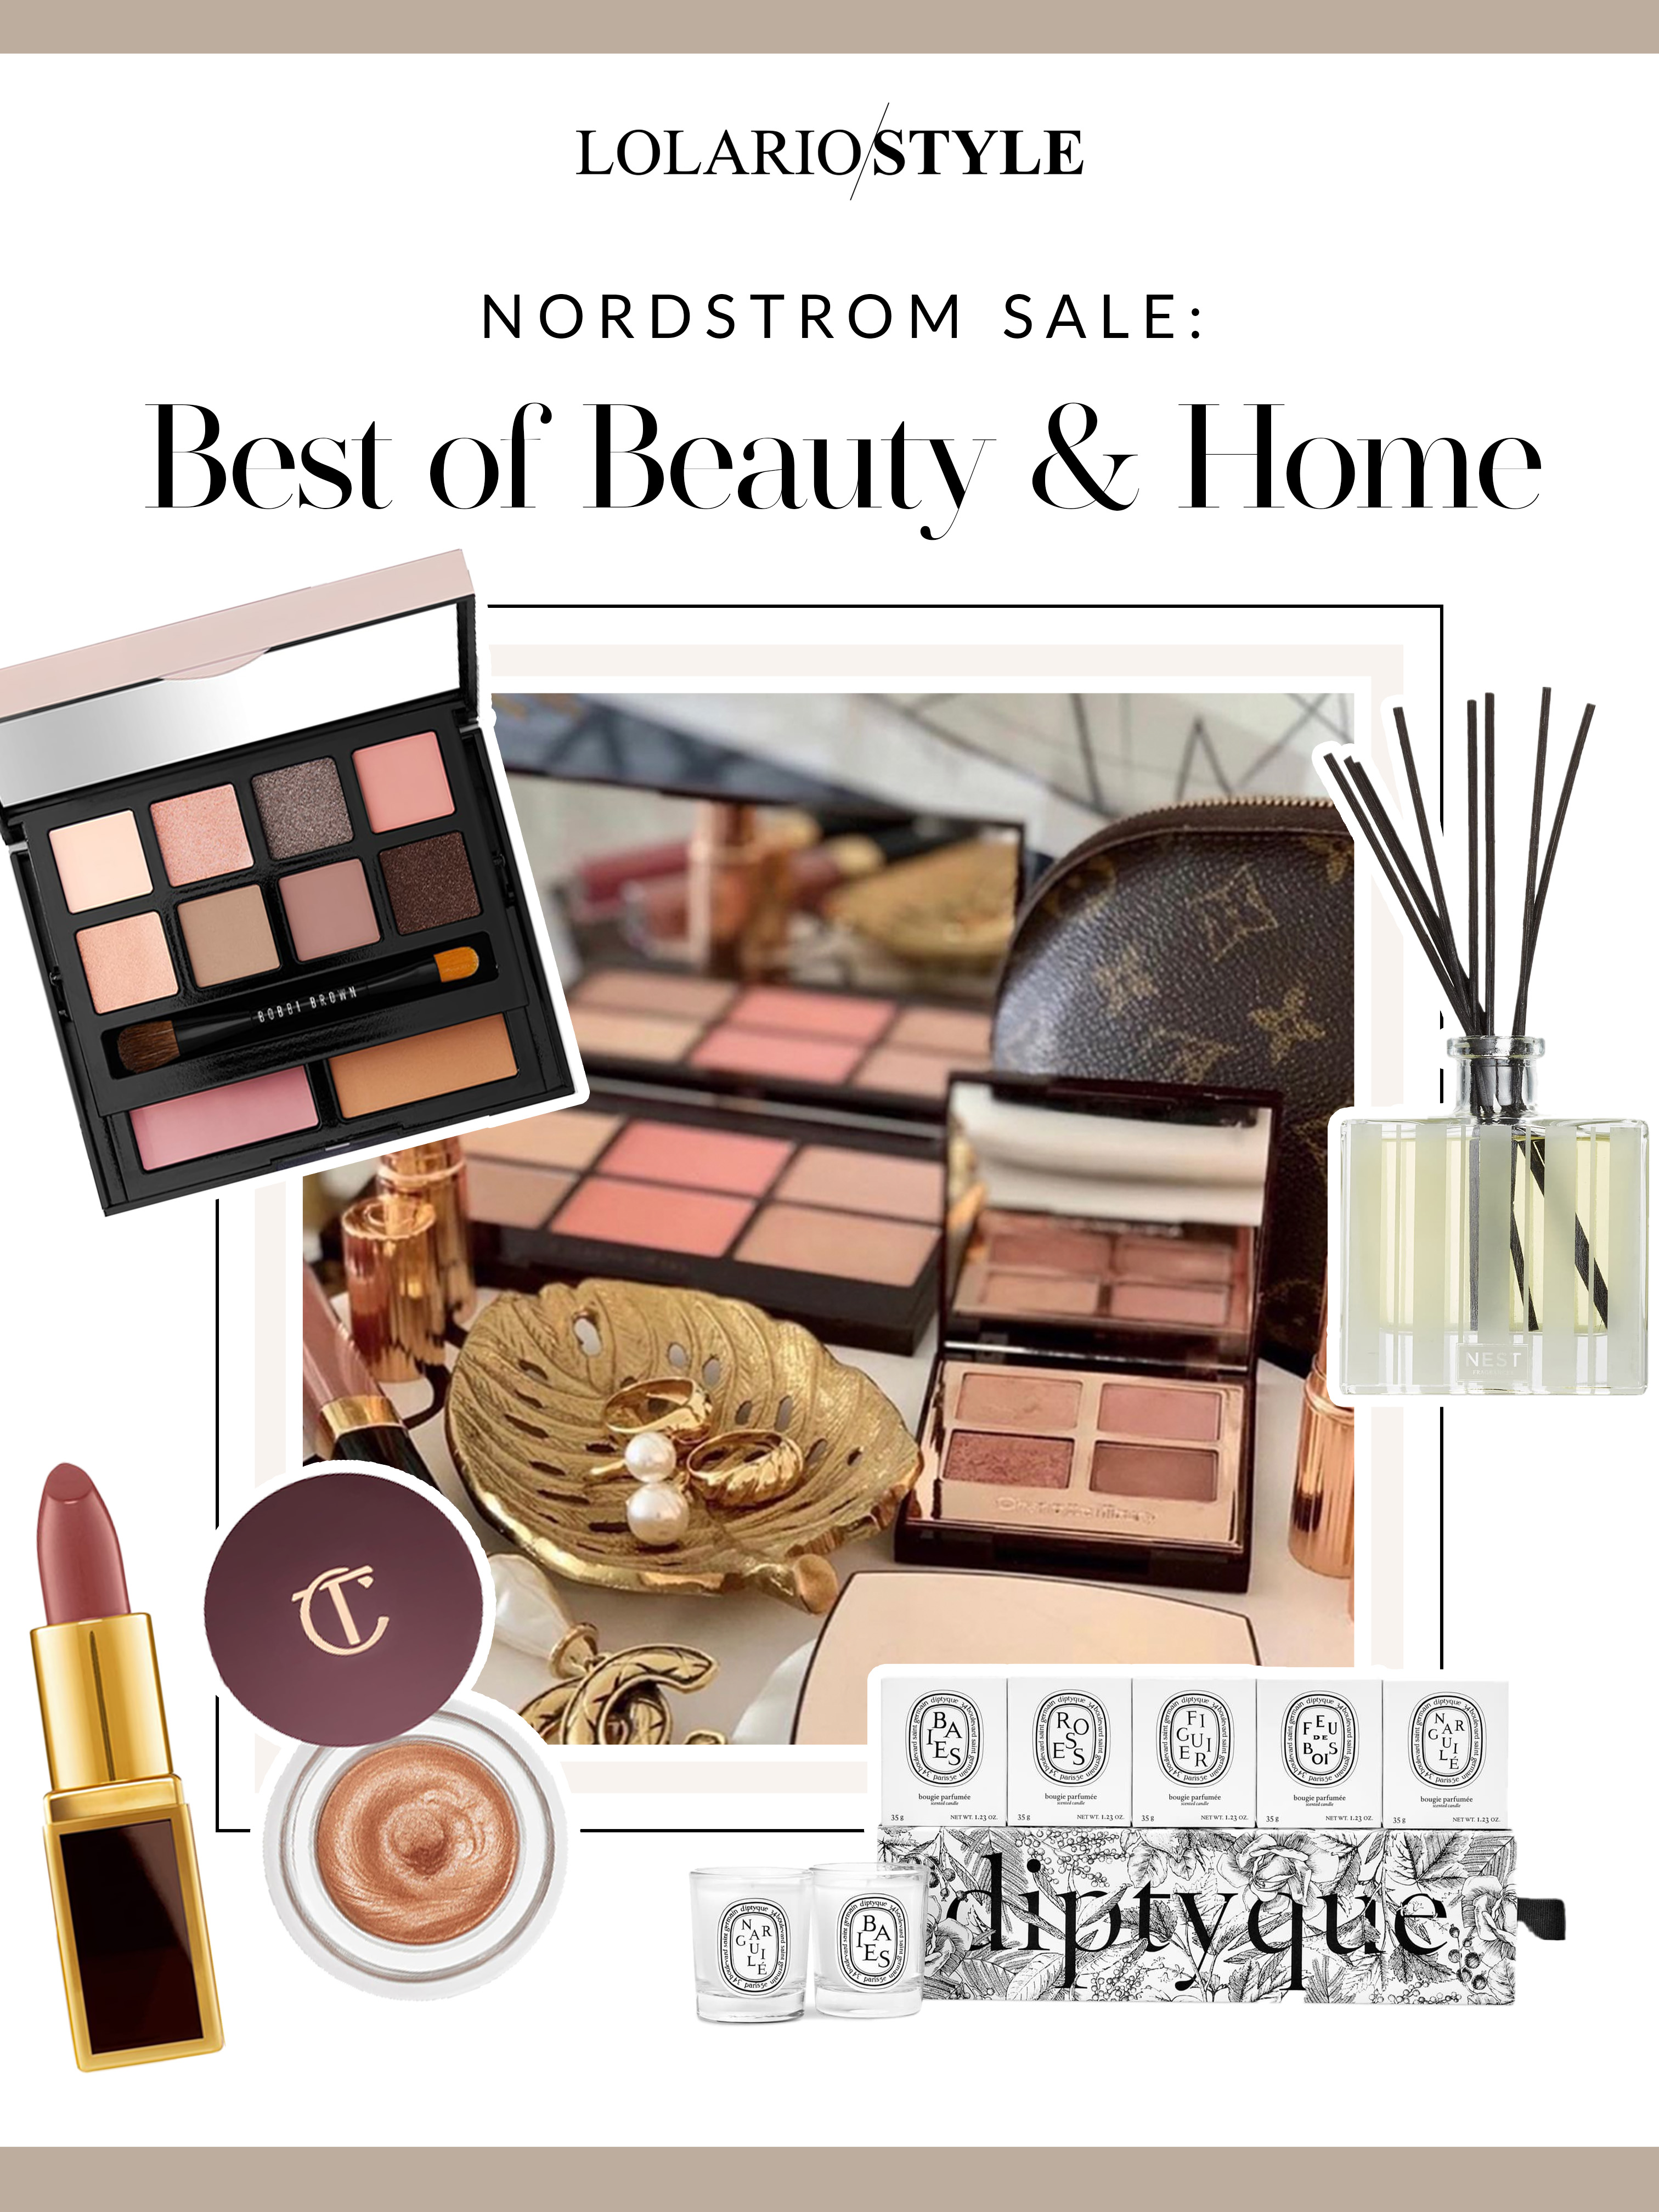 Nordstrom Sale: Best of Beauty & Home